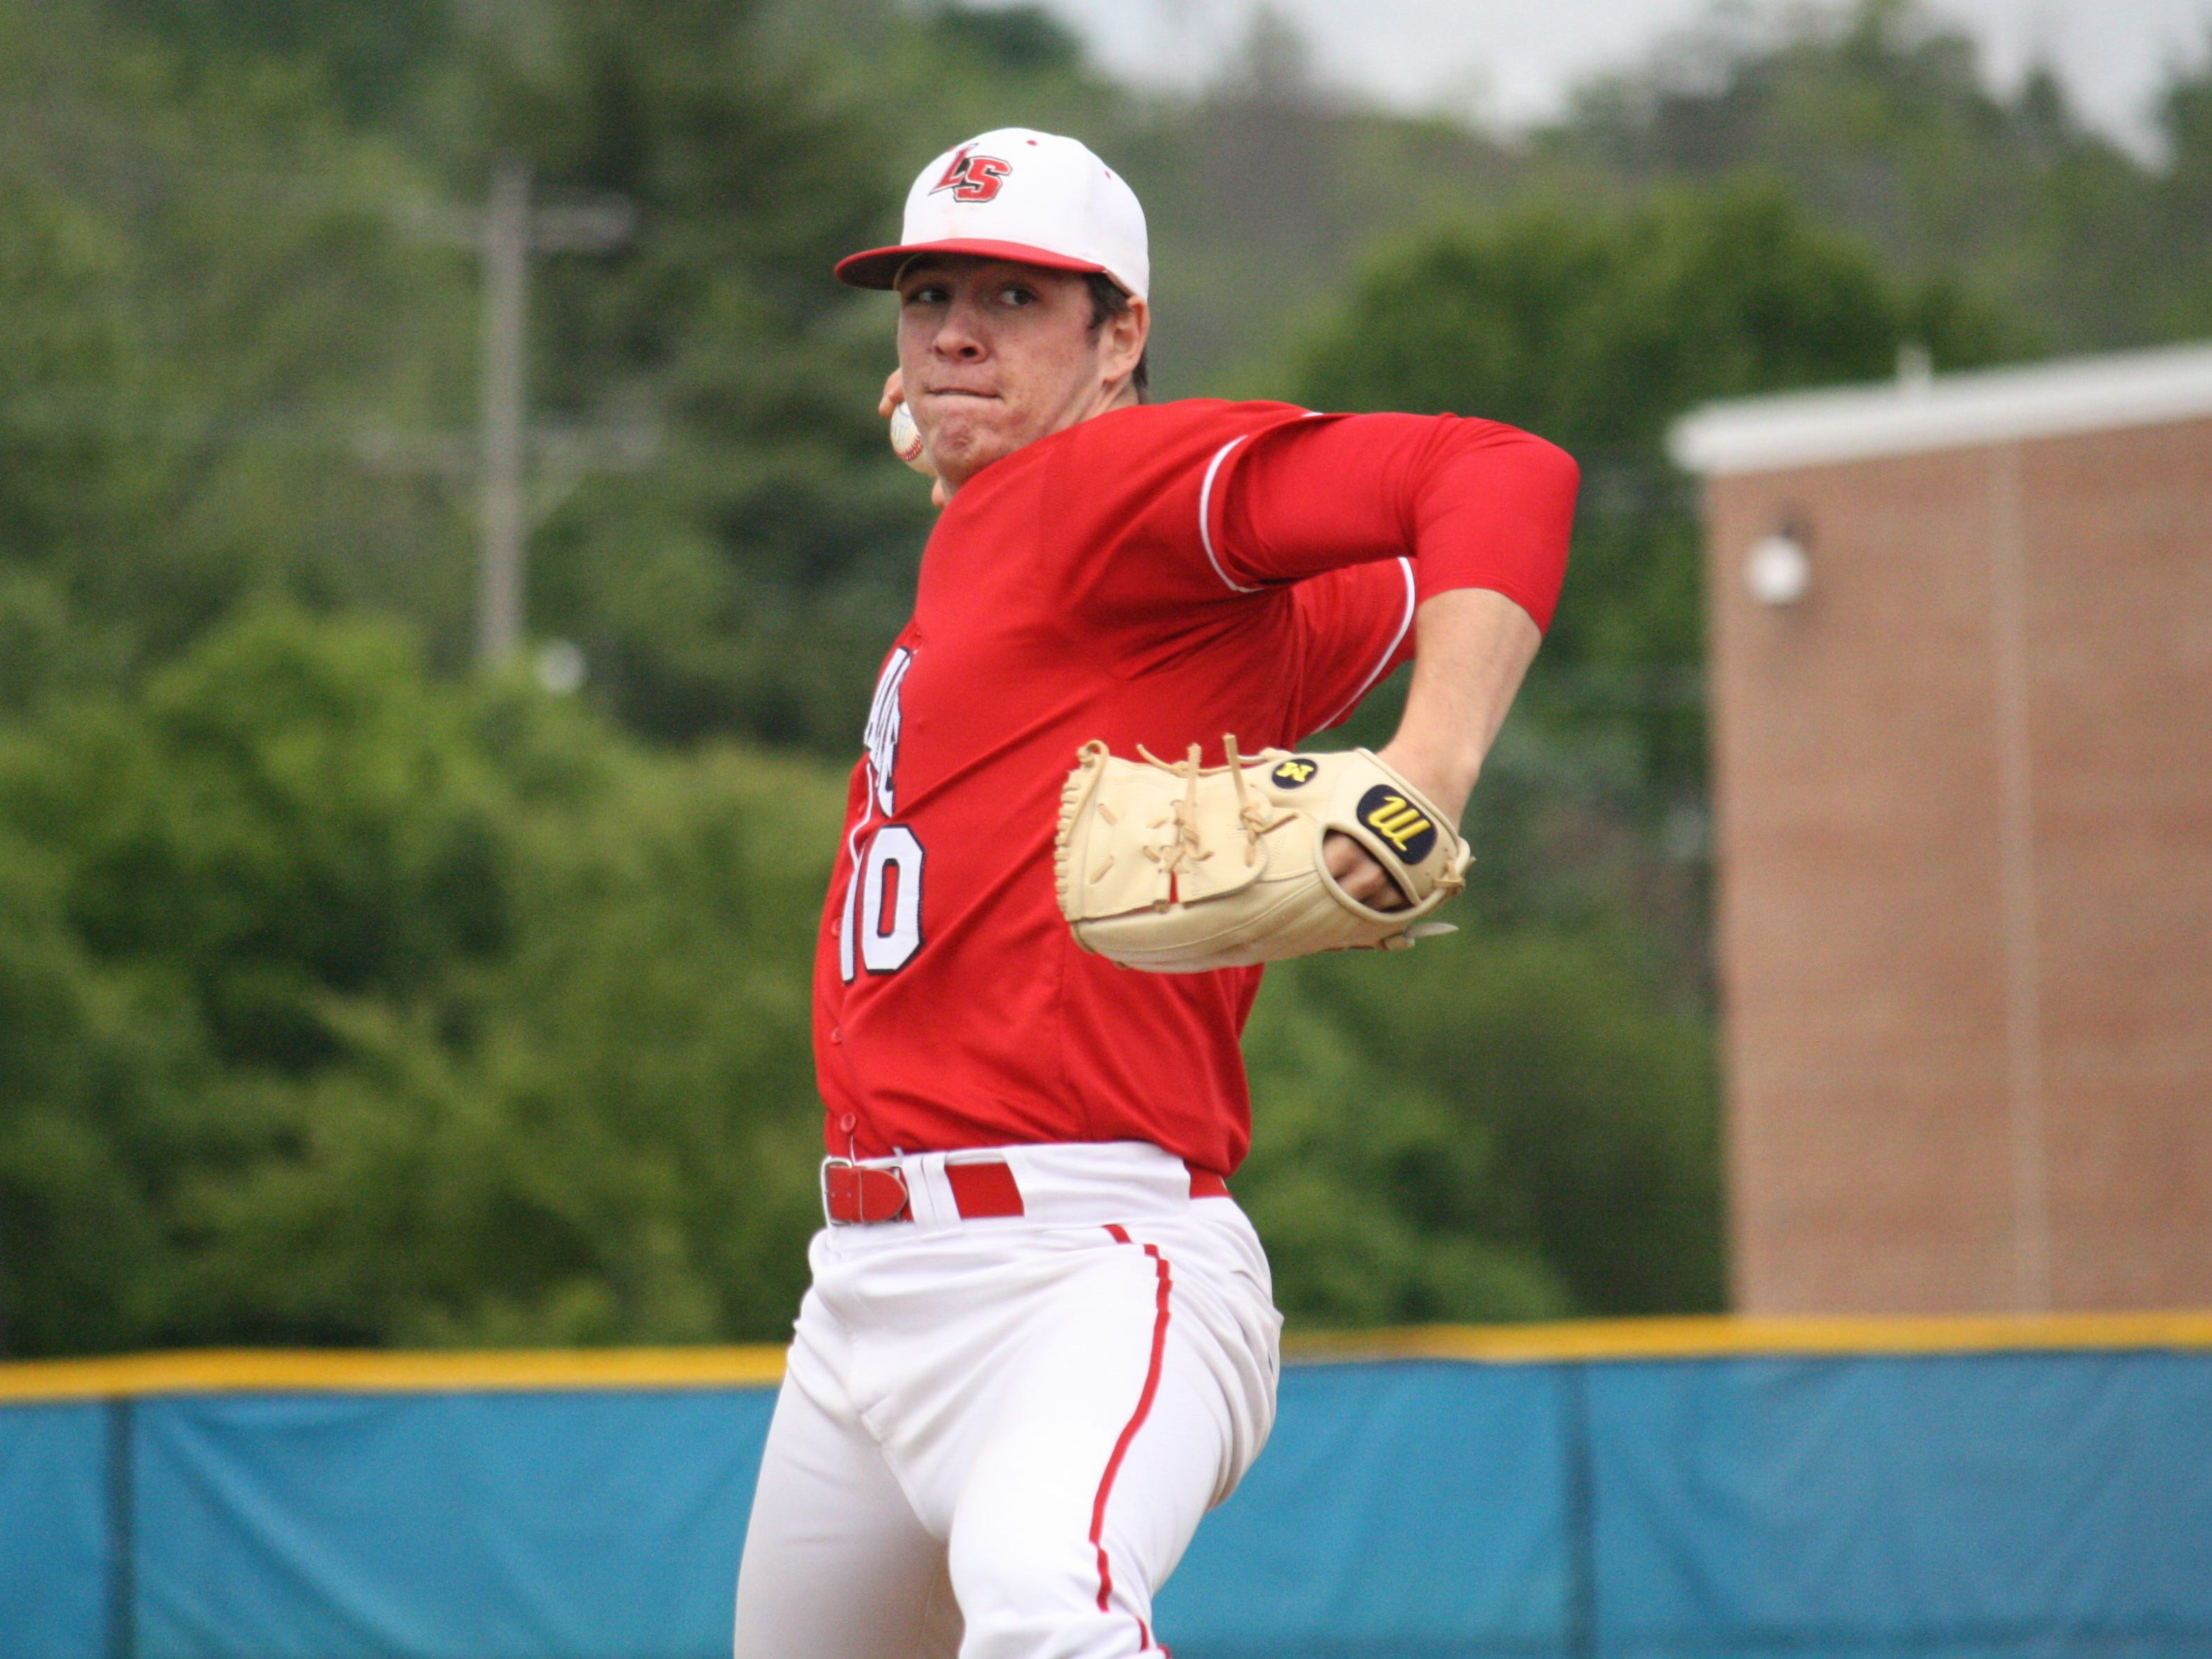 La Salle High School senior pitcher Nick Ernst threw a complete-game shutout in a 1-0 win over Elder in a Division I sectional final at Hamilton on May 21.